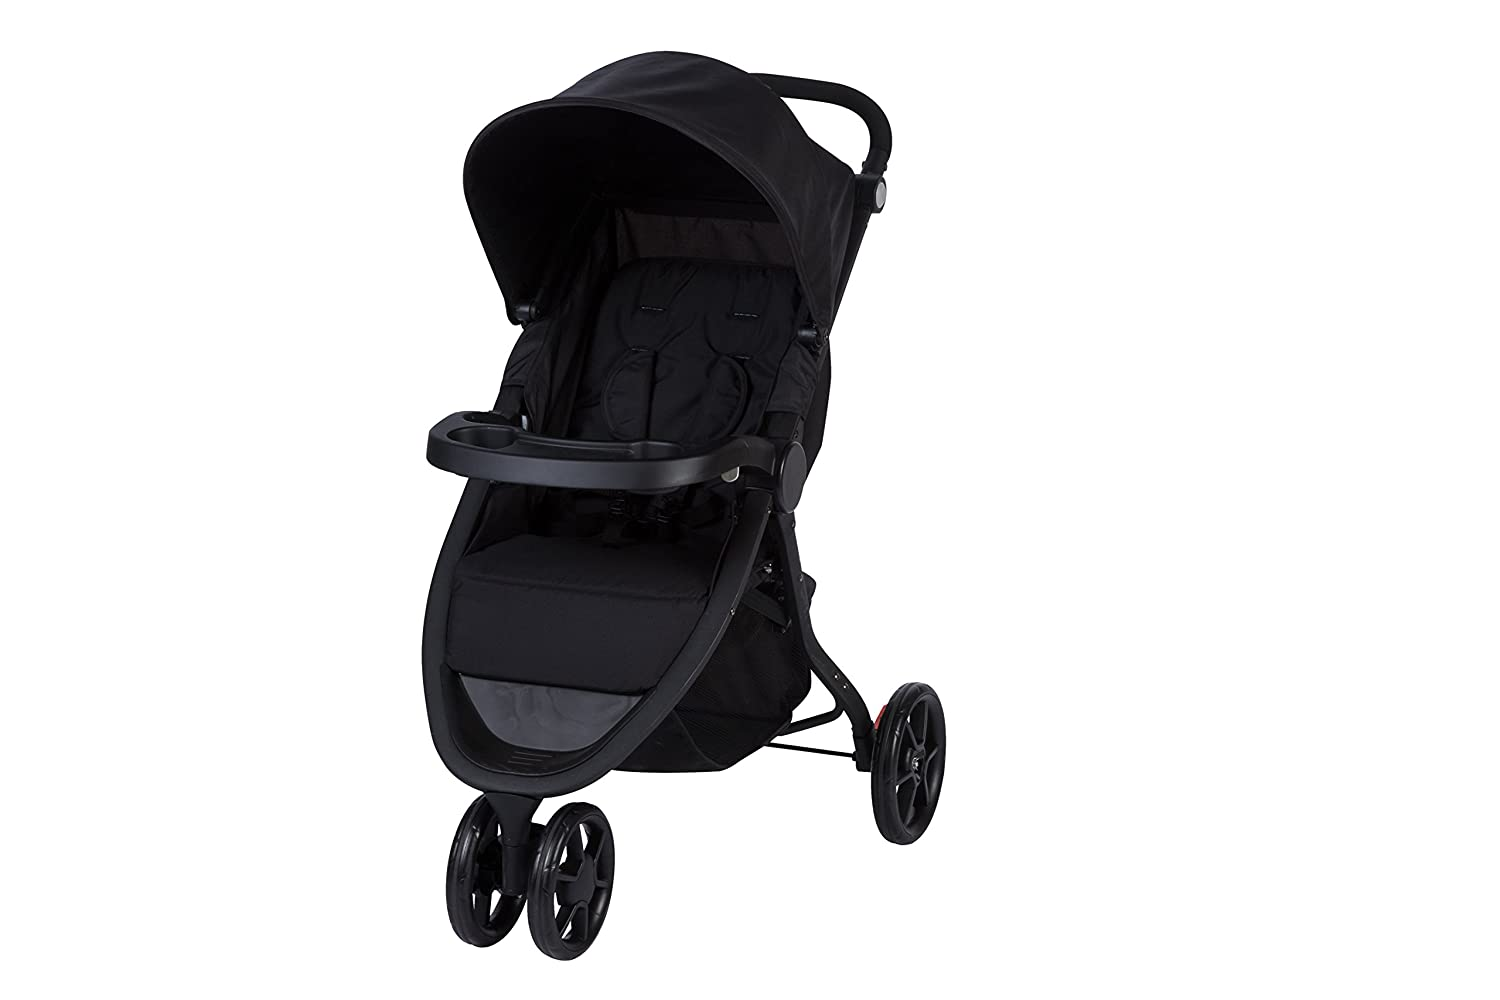 Safety 1st Poussette 3 roues Urban Trek Multi-positions, Pliage Facile, Grand Panier et Habillage Pluie - Full Black DORA3 1212764000